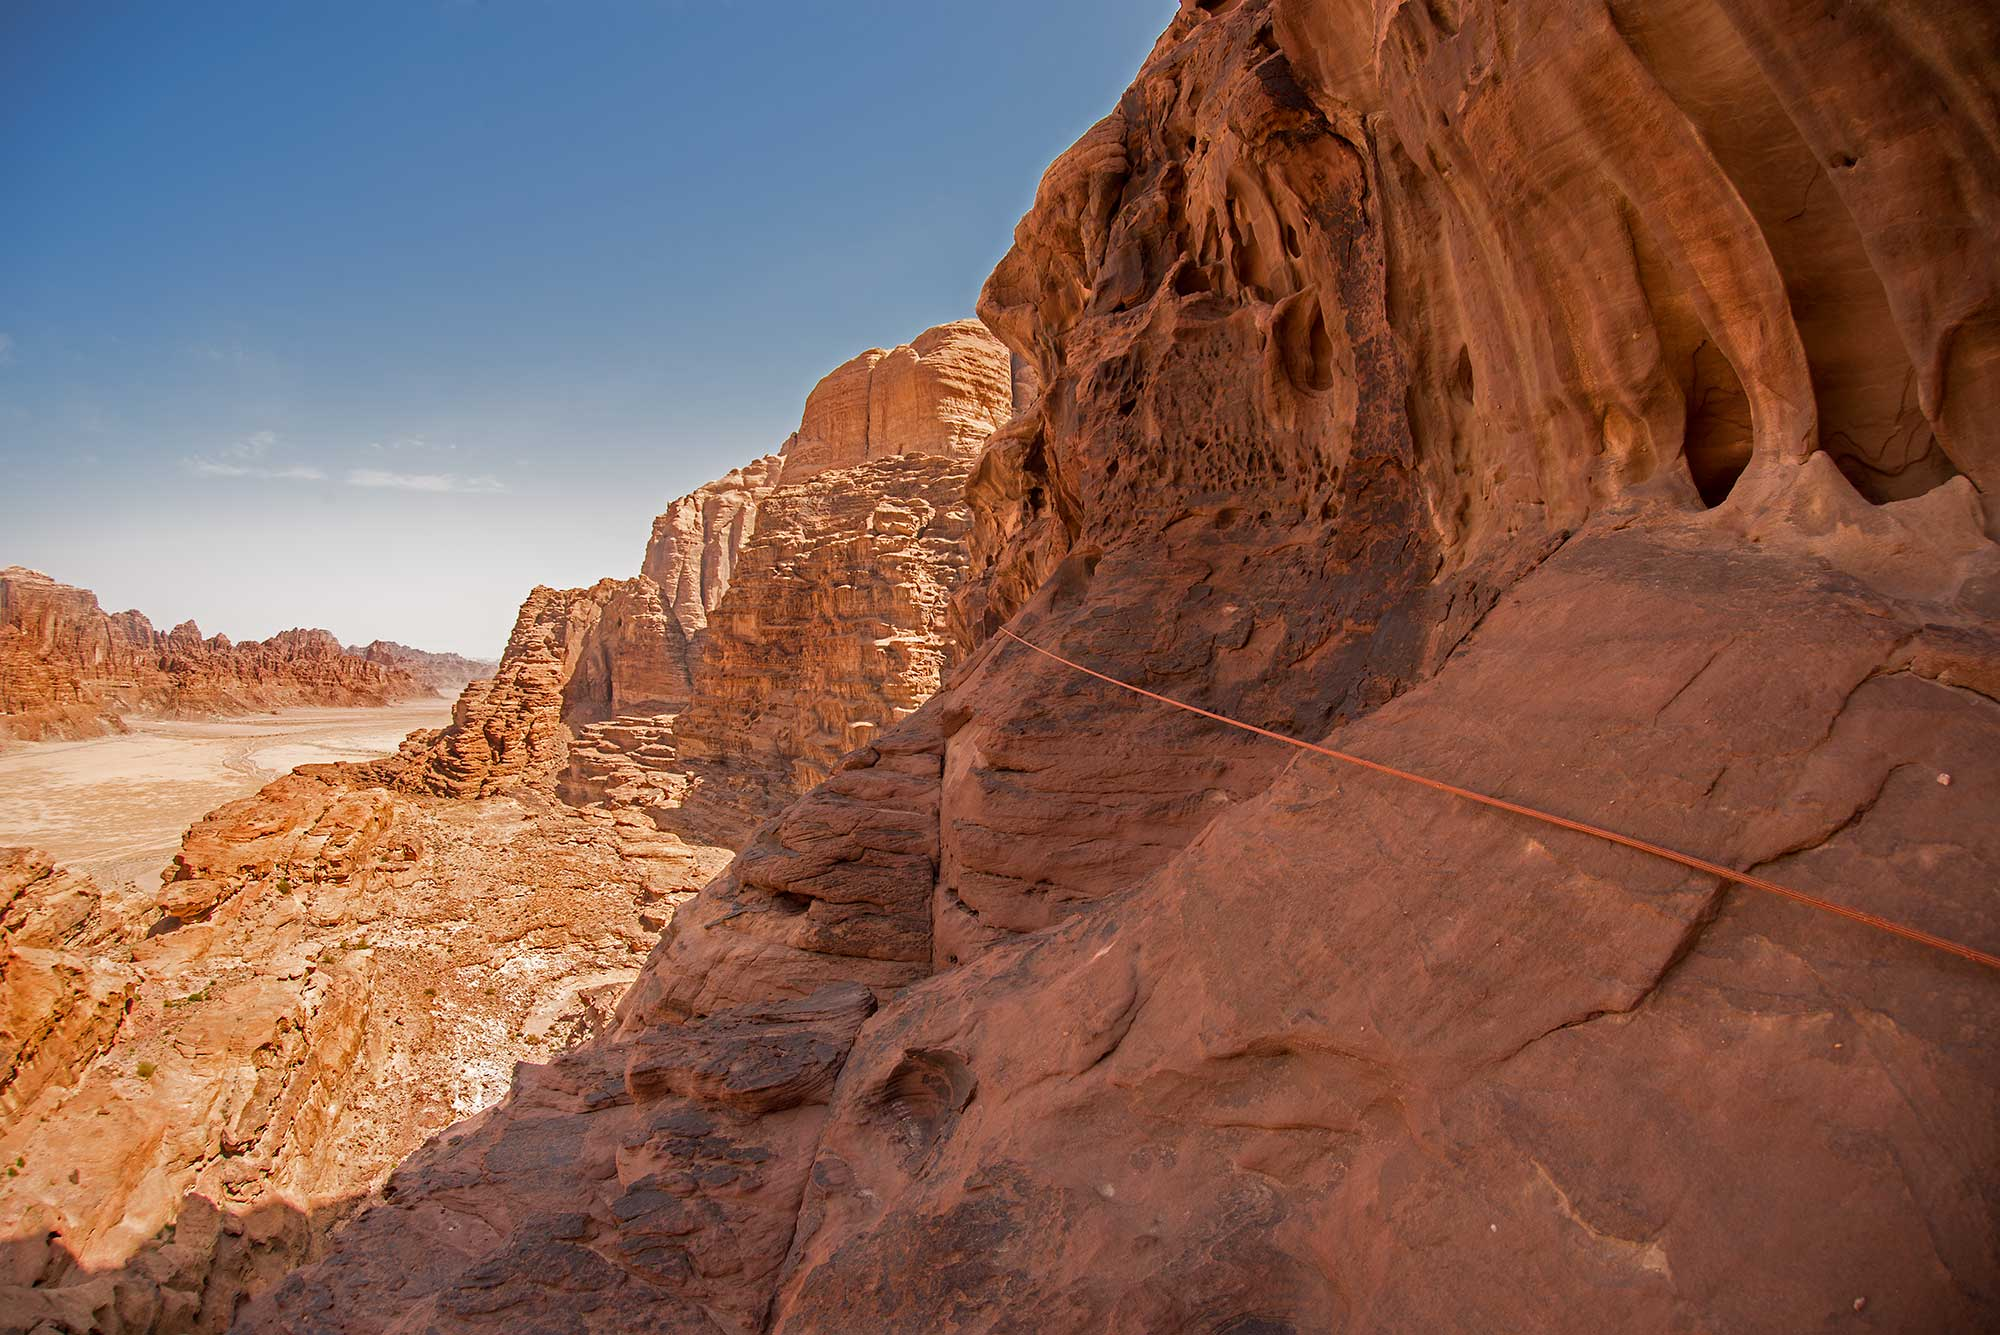 Wadi Rum, a place for extreme hikes